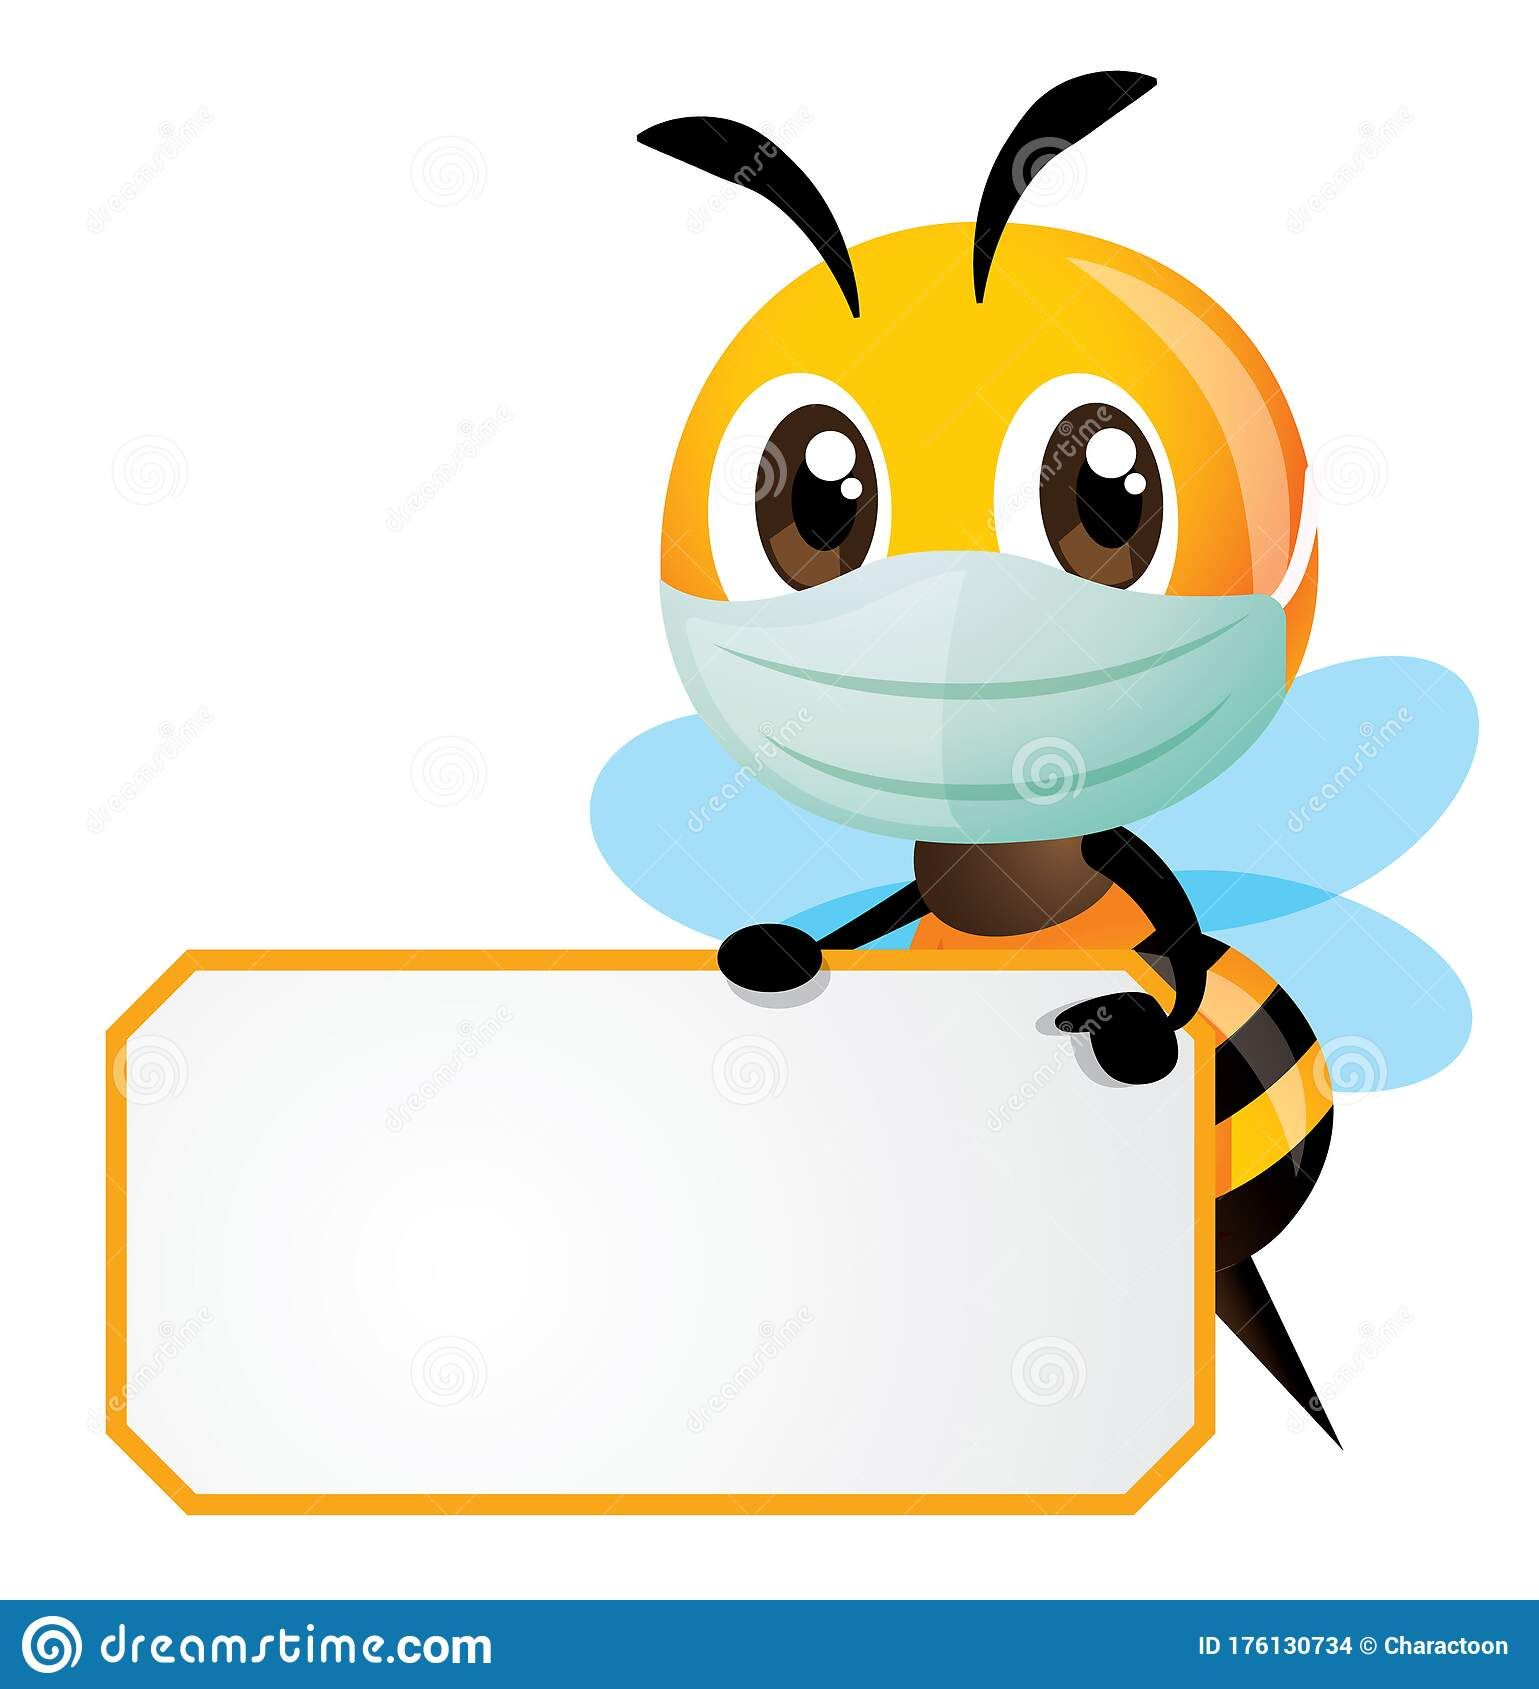 Pin By Frances Loader On Classroom Bee Theme Cute Bee Bee Theme Bee